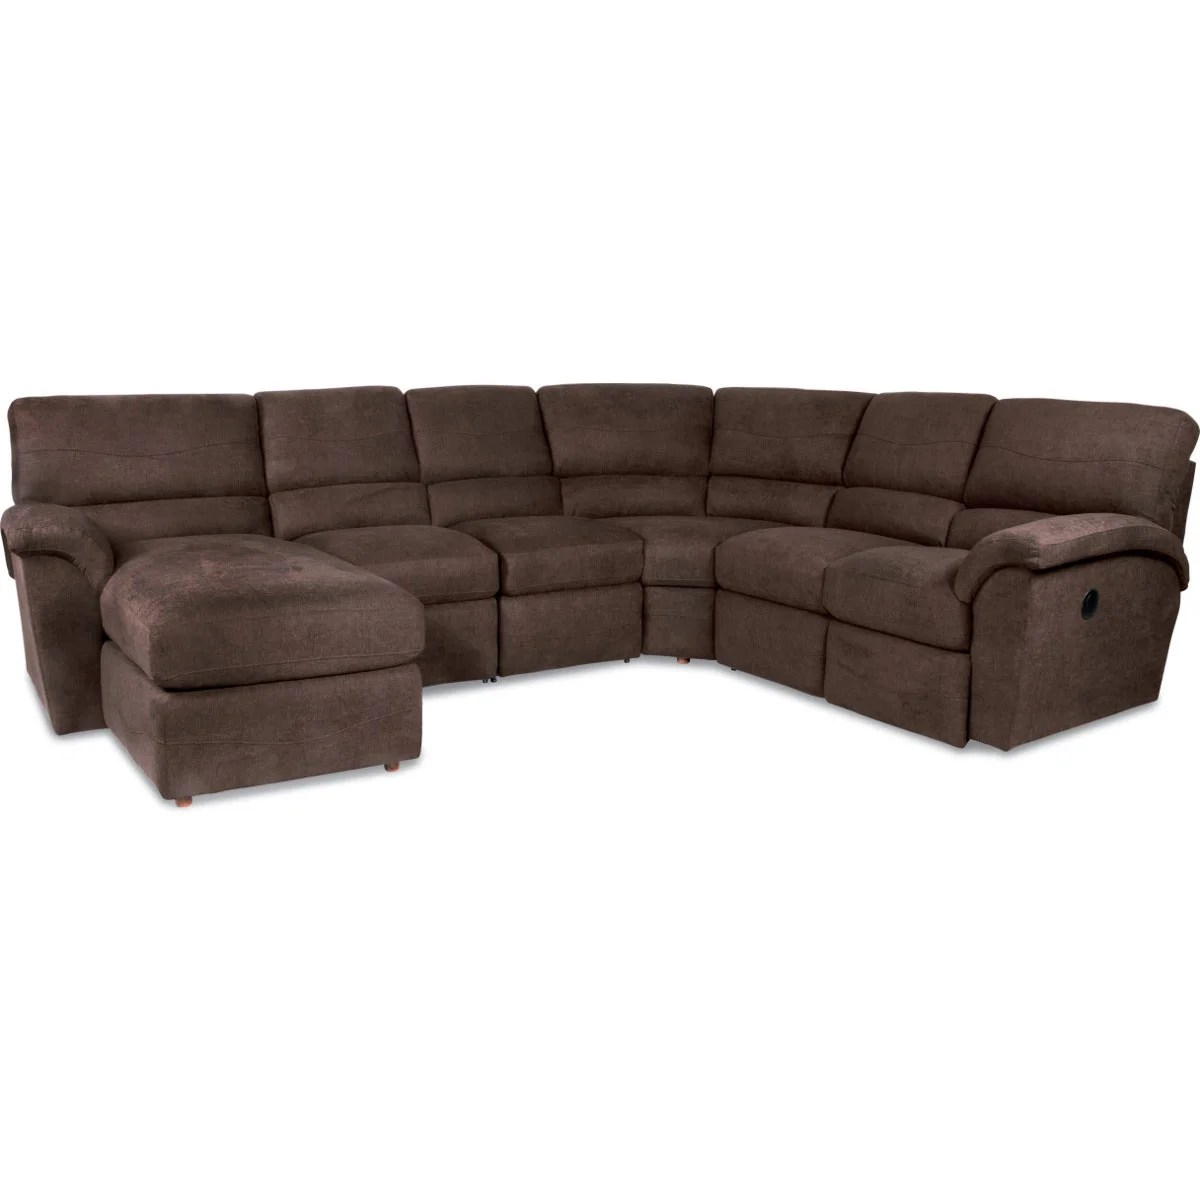 Lazy Boy Reese Sofa Lazy Boy Leather Reclining Sofa